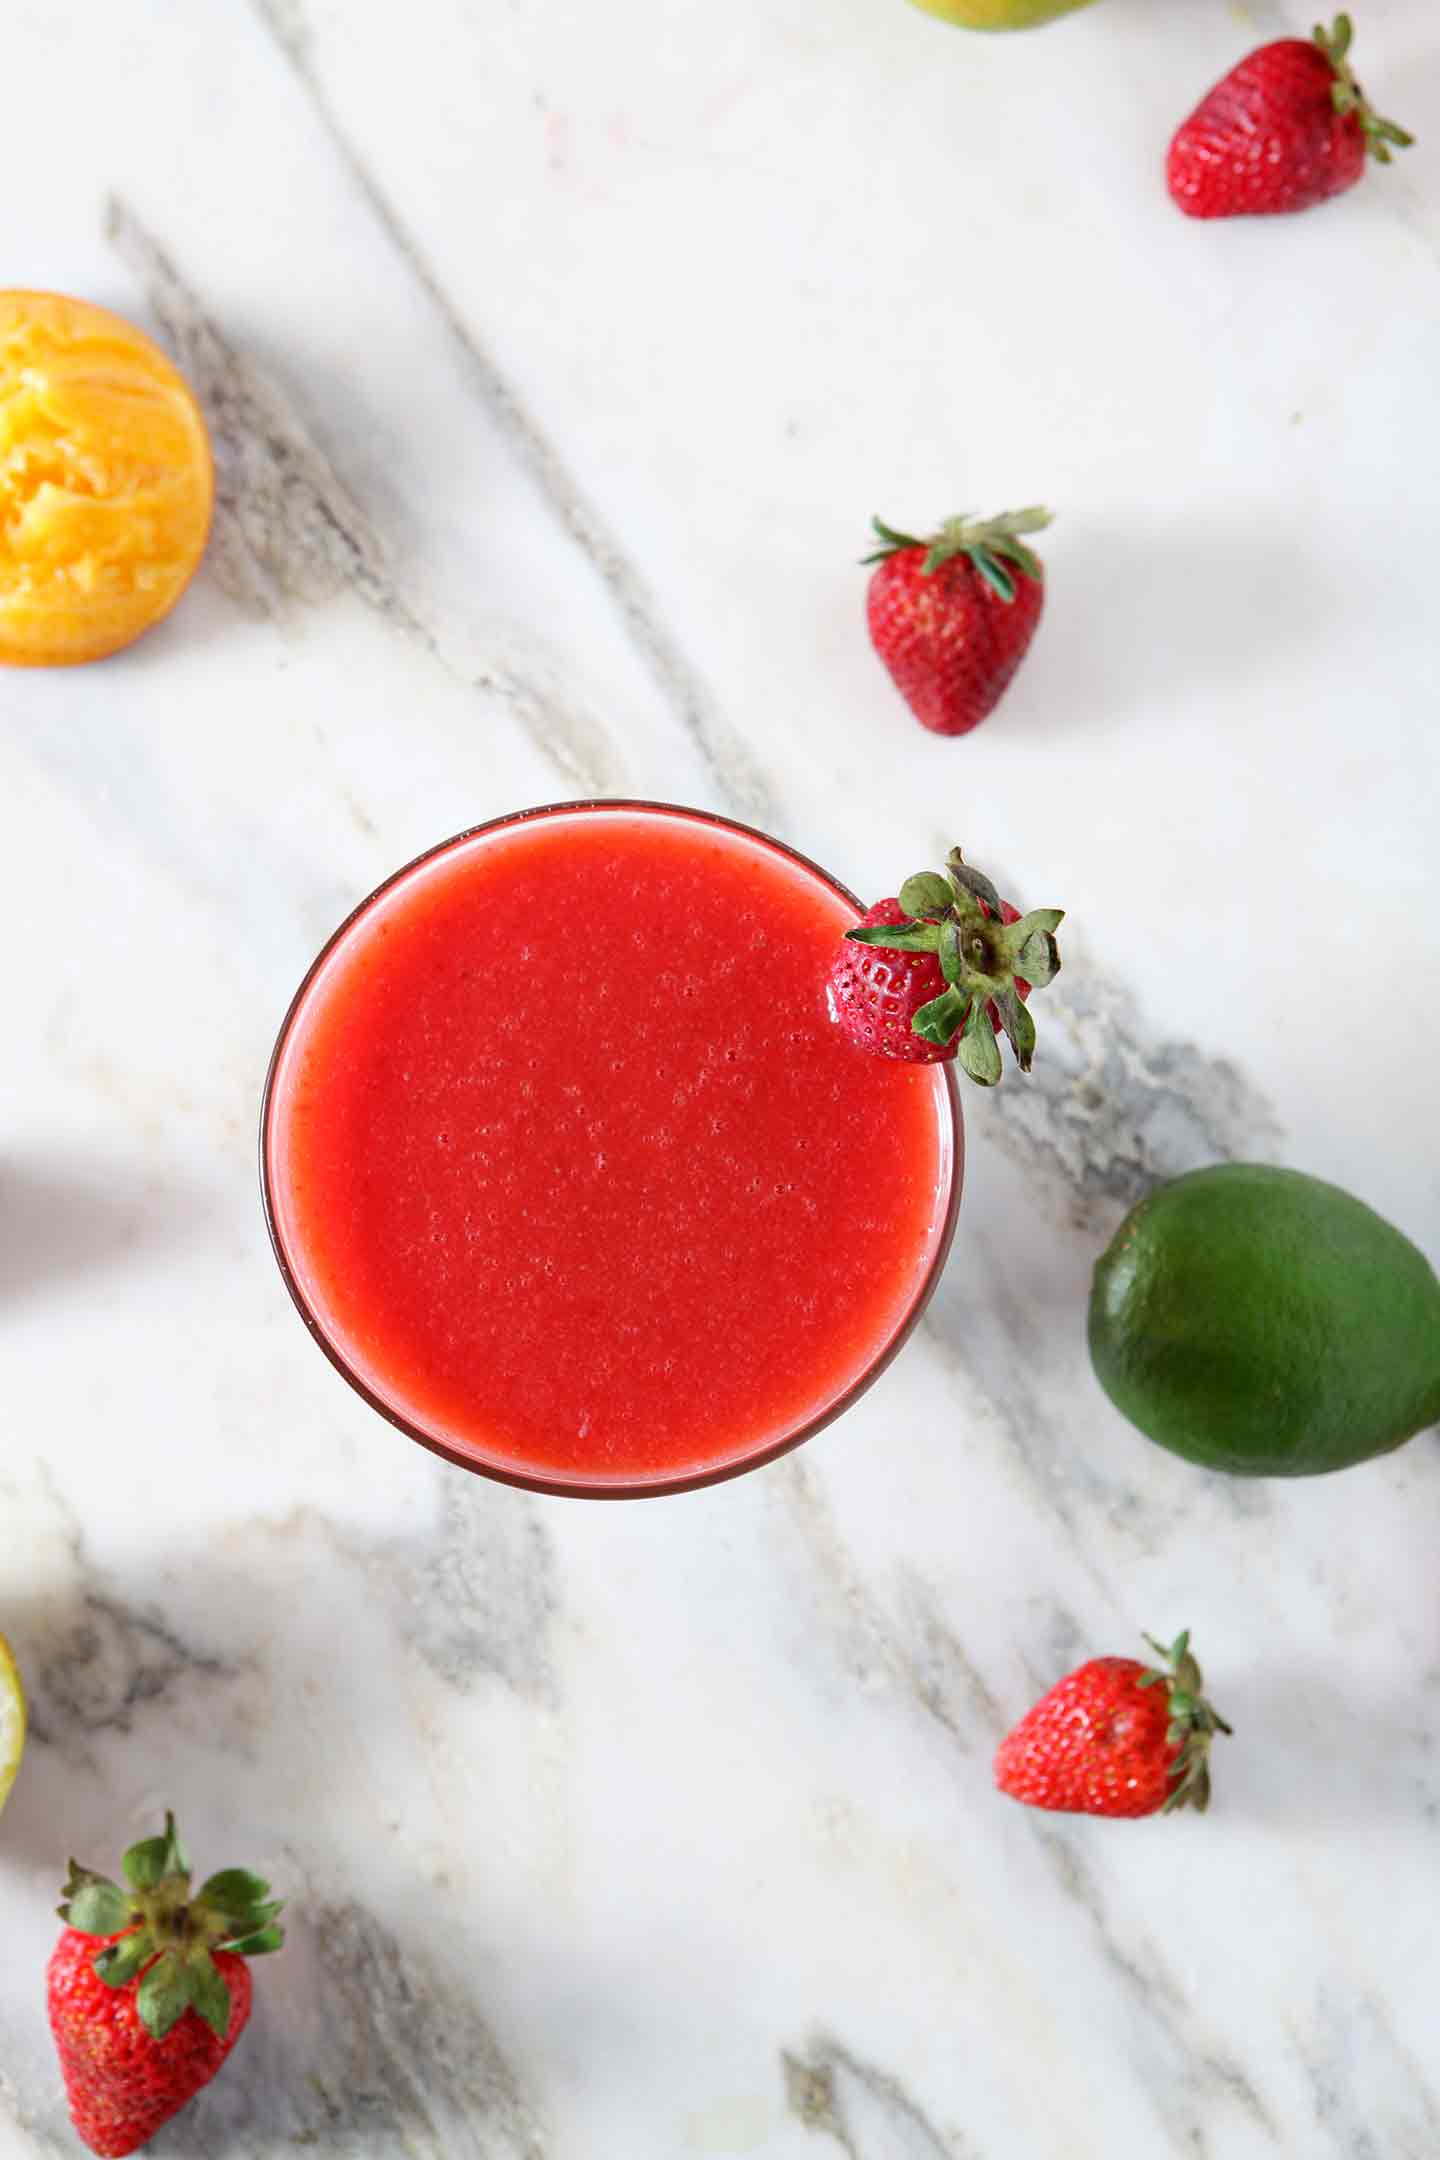 A Strawberry Virgin Margarita sits on a marble background, surrounded by strawberries, limes and oranges.